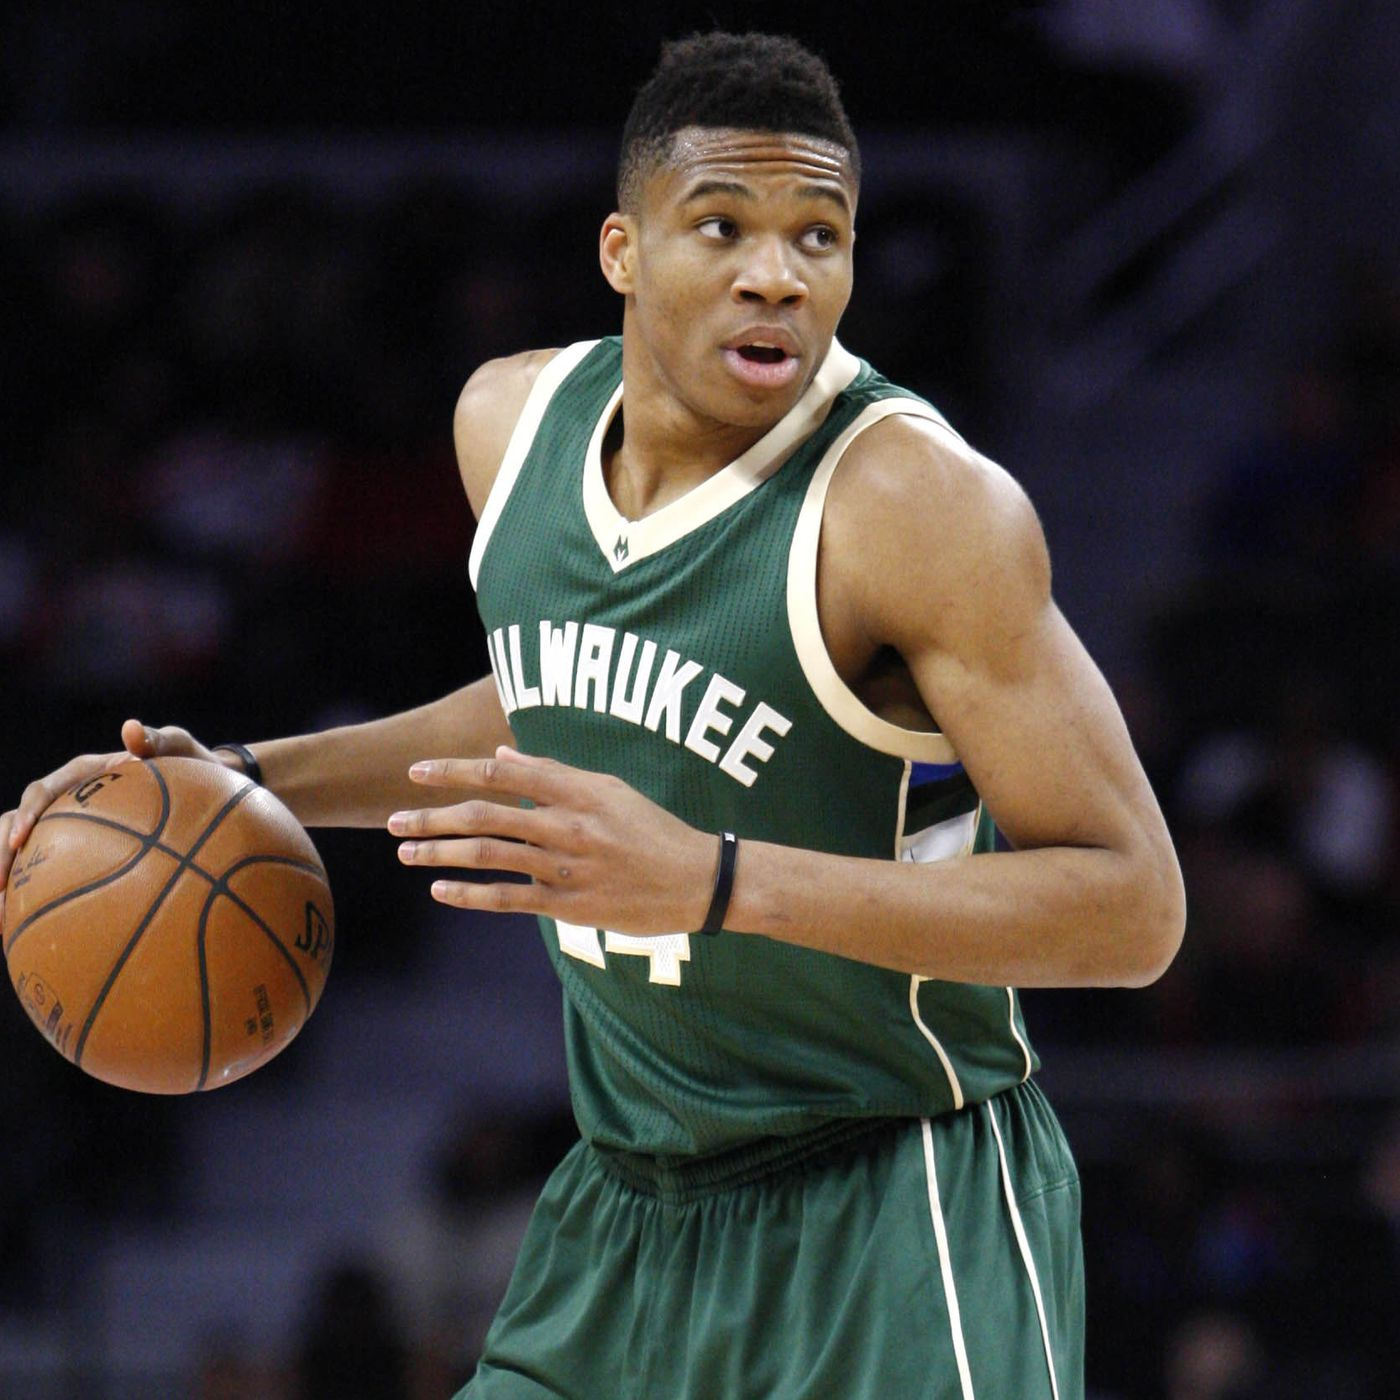 7192892f313 Bucks, Giannis Antetokounmpo agree to 4-year, $100 million contract  extension